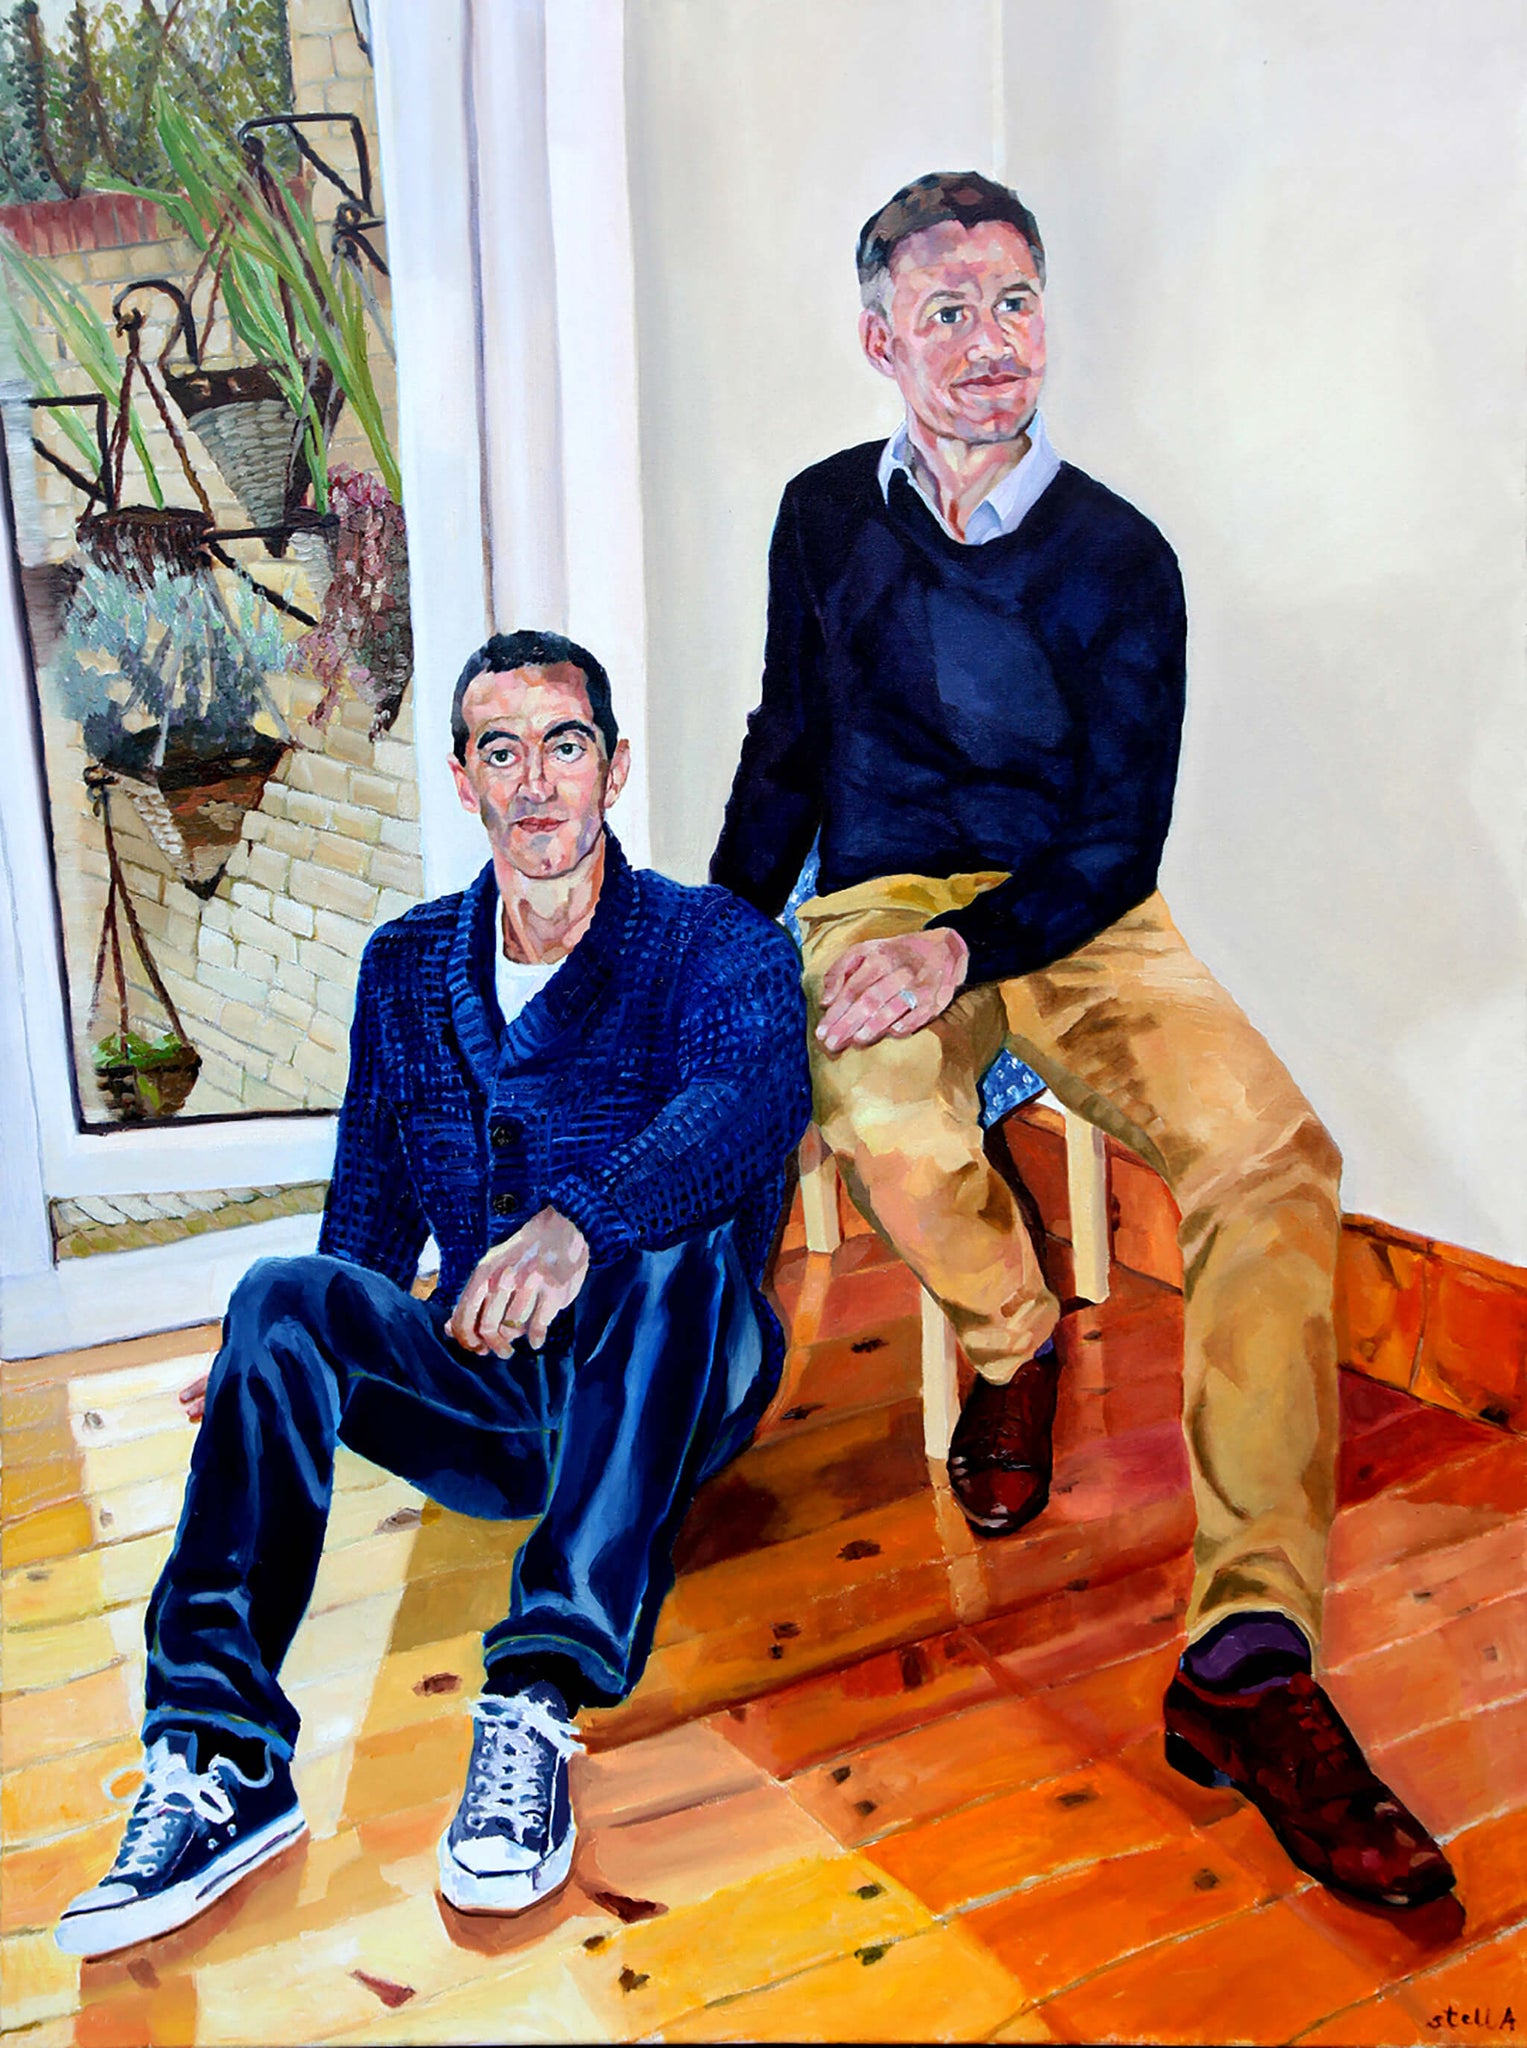 Ex Sky News' Robert Nisbet and partner lawyer Alexis Mavrikakis portrait in oil on canvas artwork by Stella Tooth.